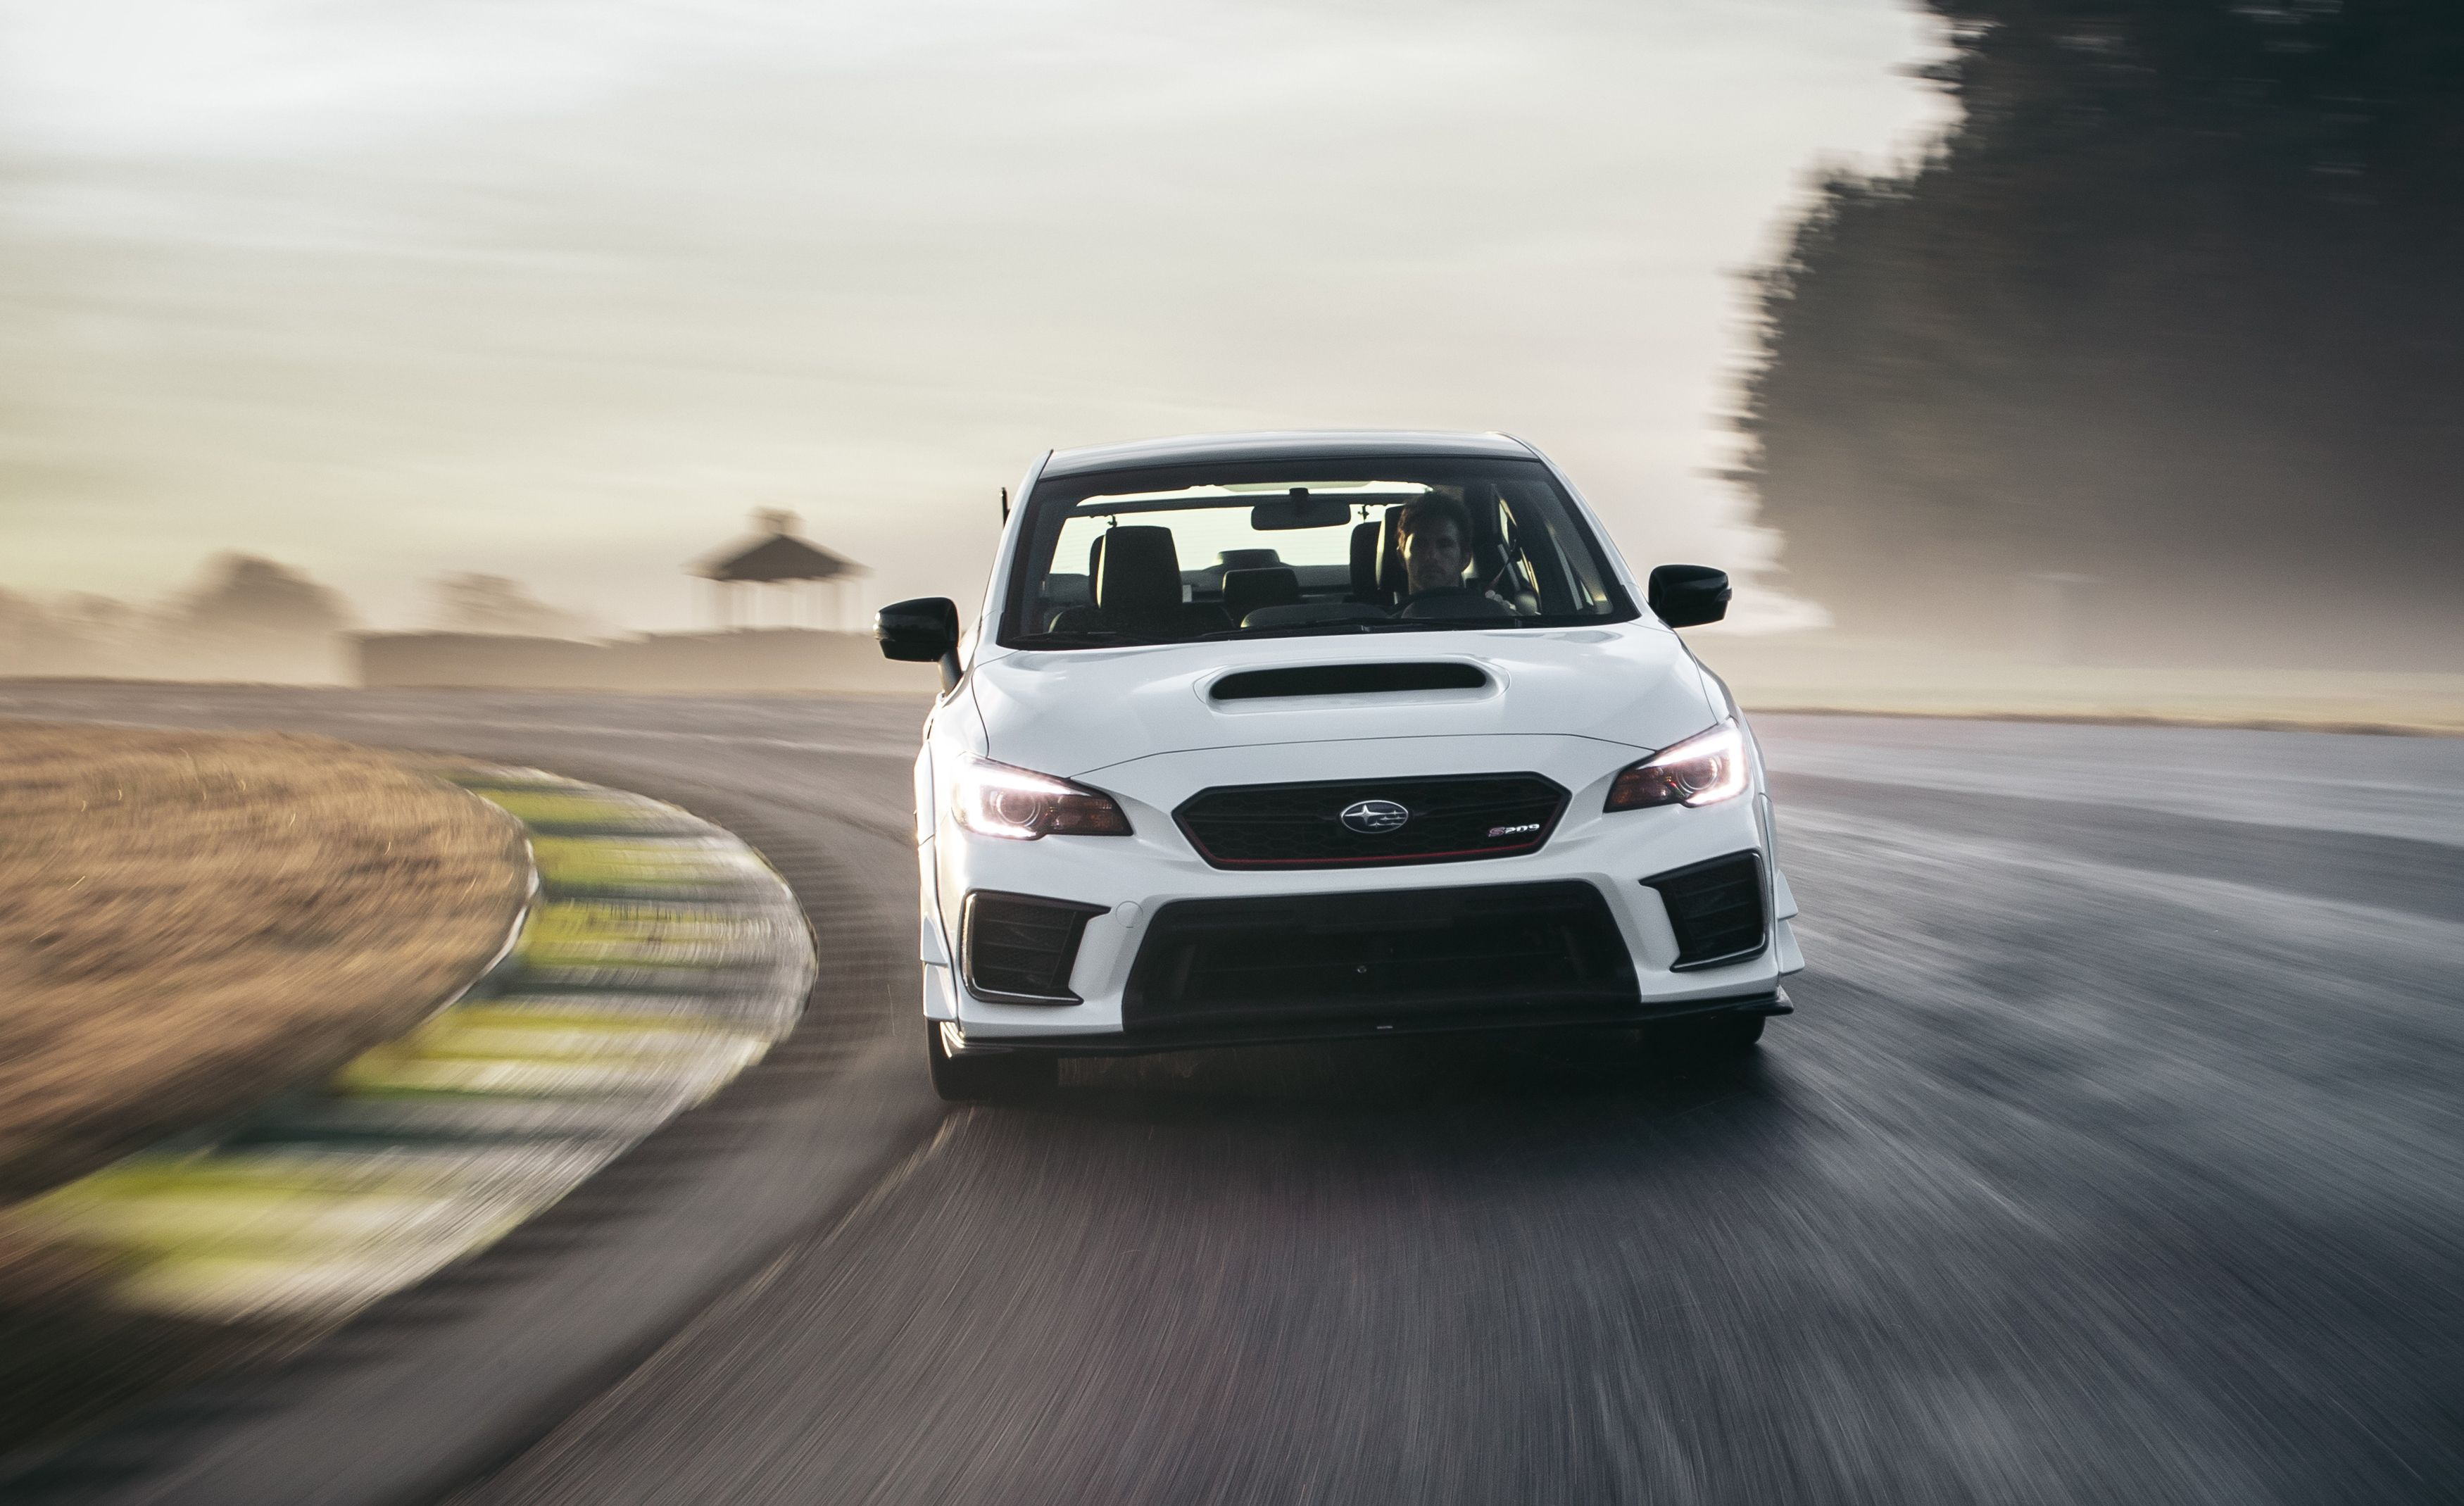 Exclusive The 2019 Subaru Sti S209 Brings Long Awaited Increase To Proto 0shares